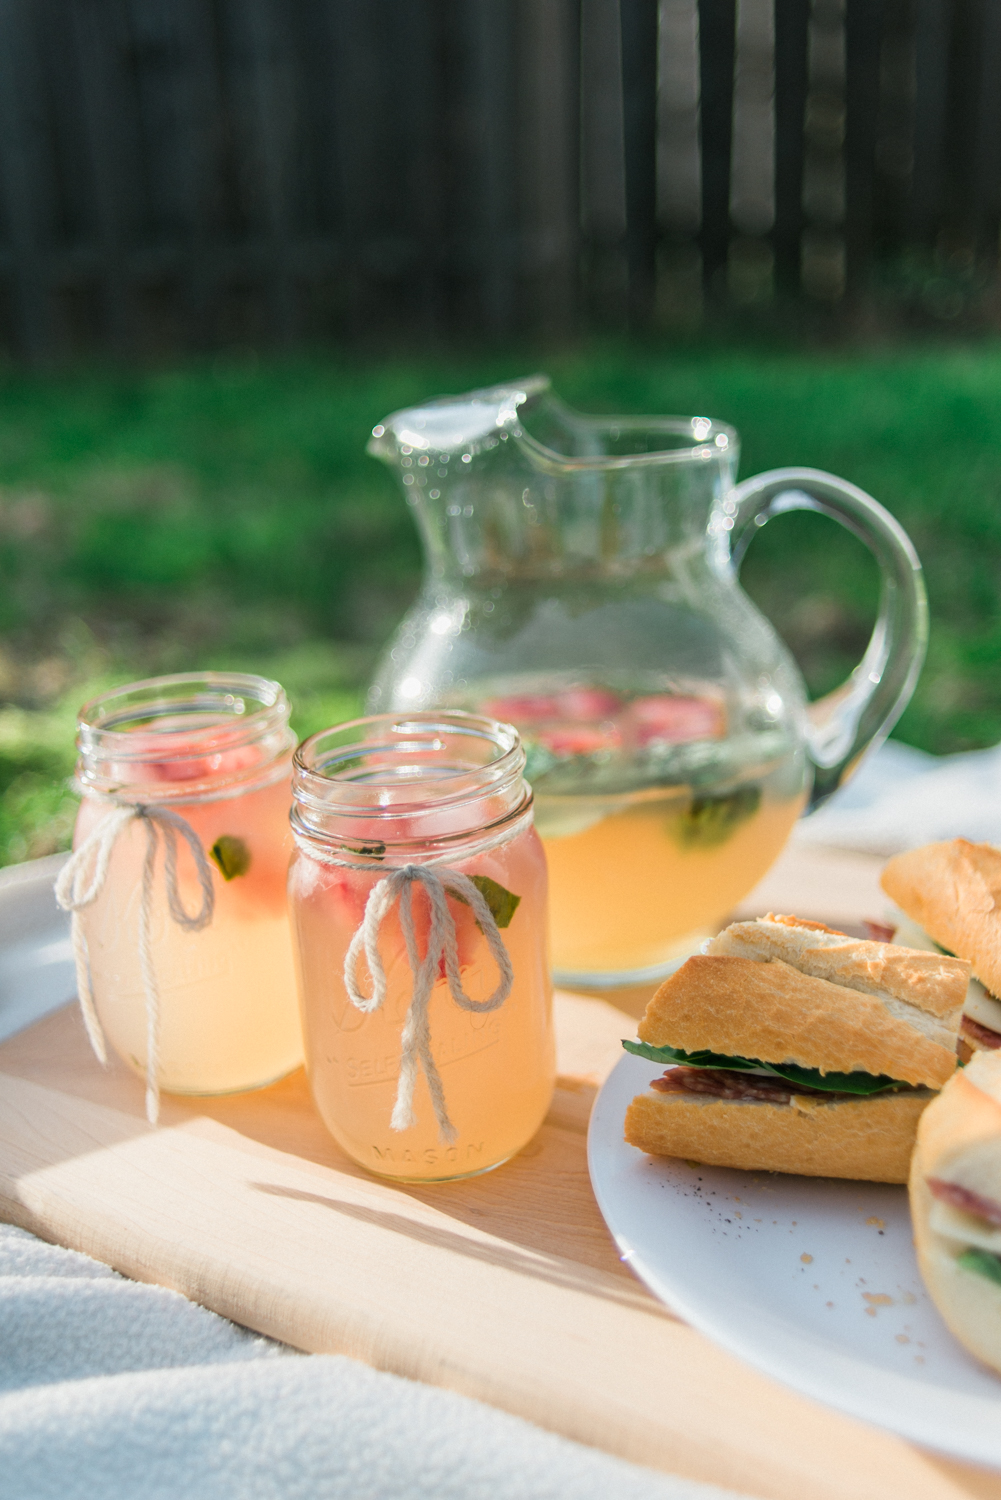 valentines-day-2015-portland-oregon-picnic-strawberry-basil-lemonade-shelley-marie-photo-2.jpg